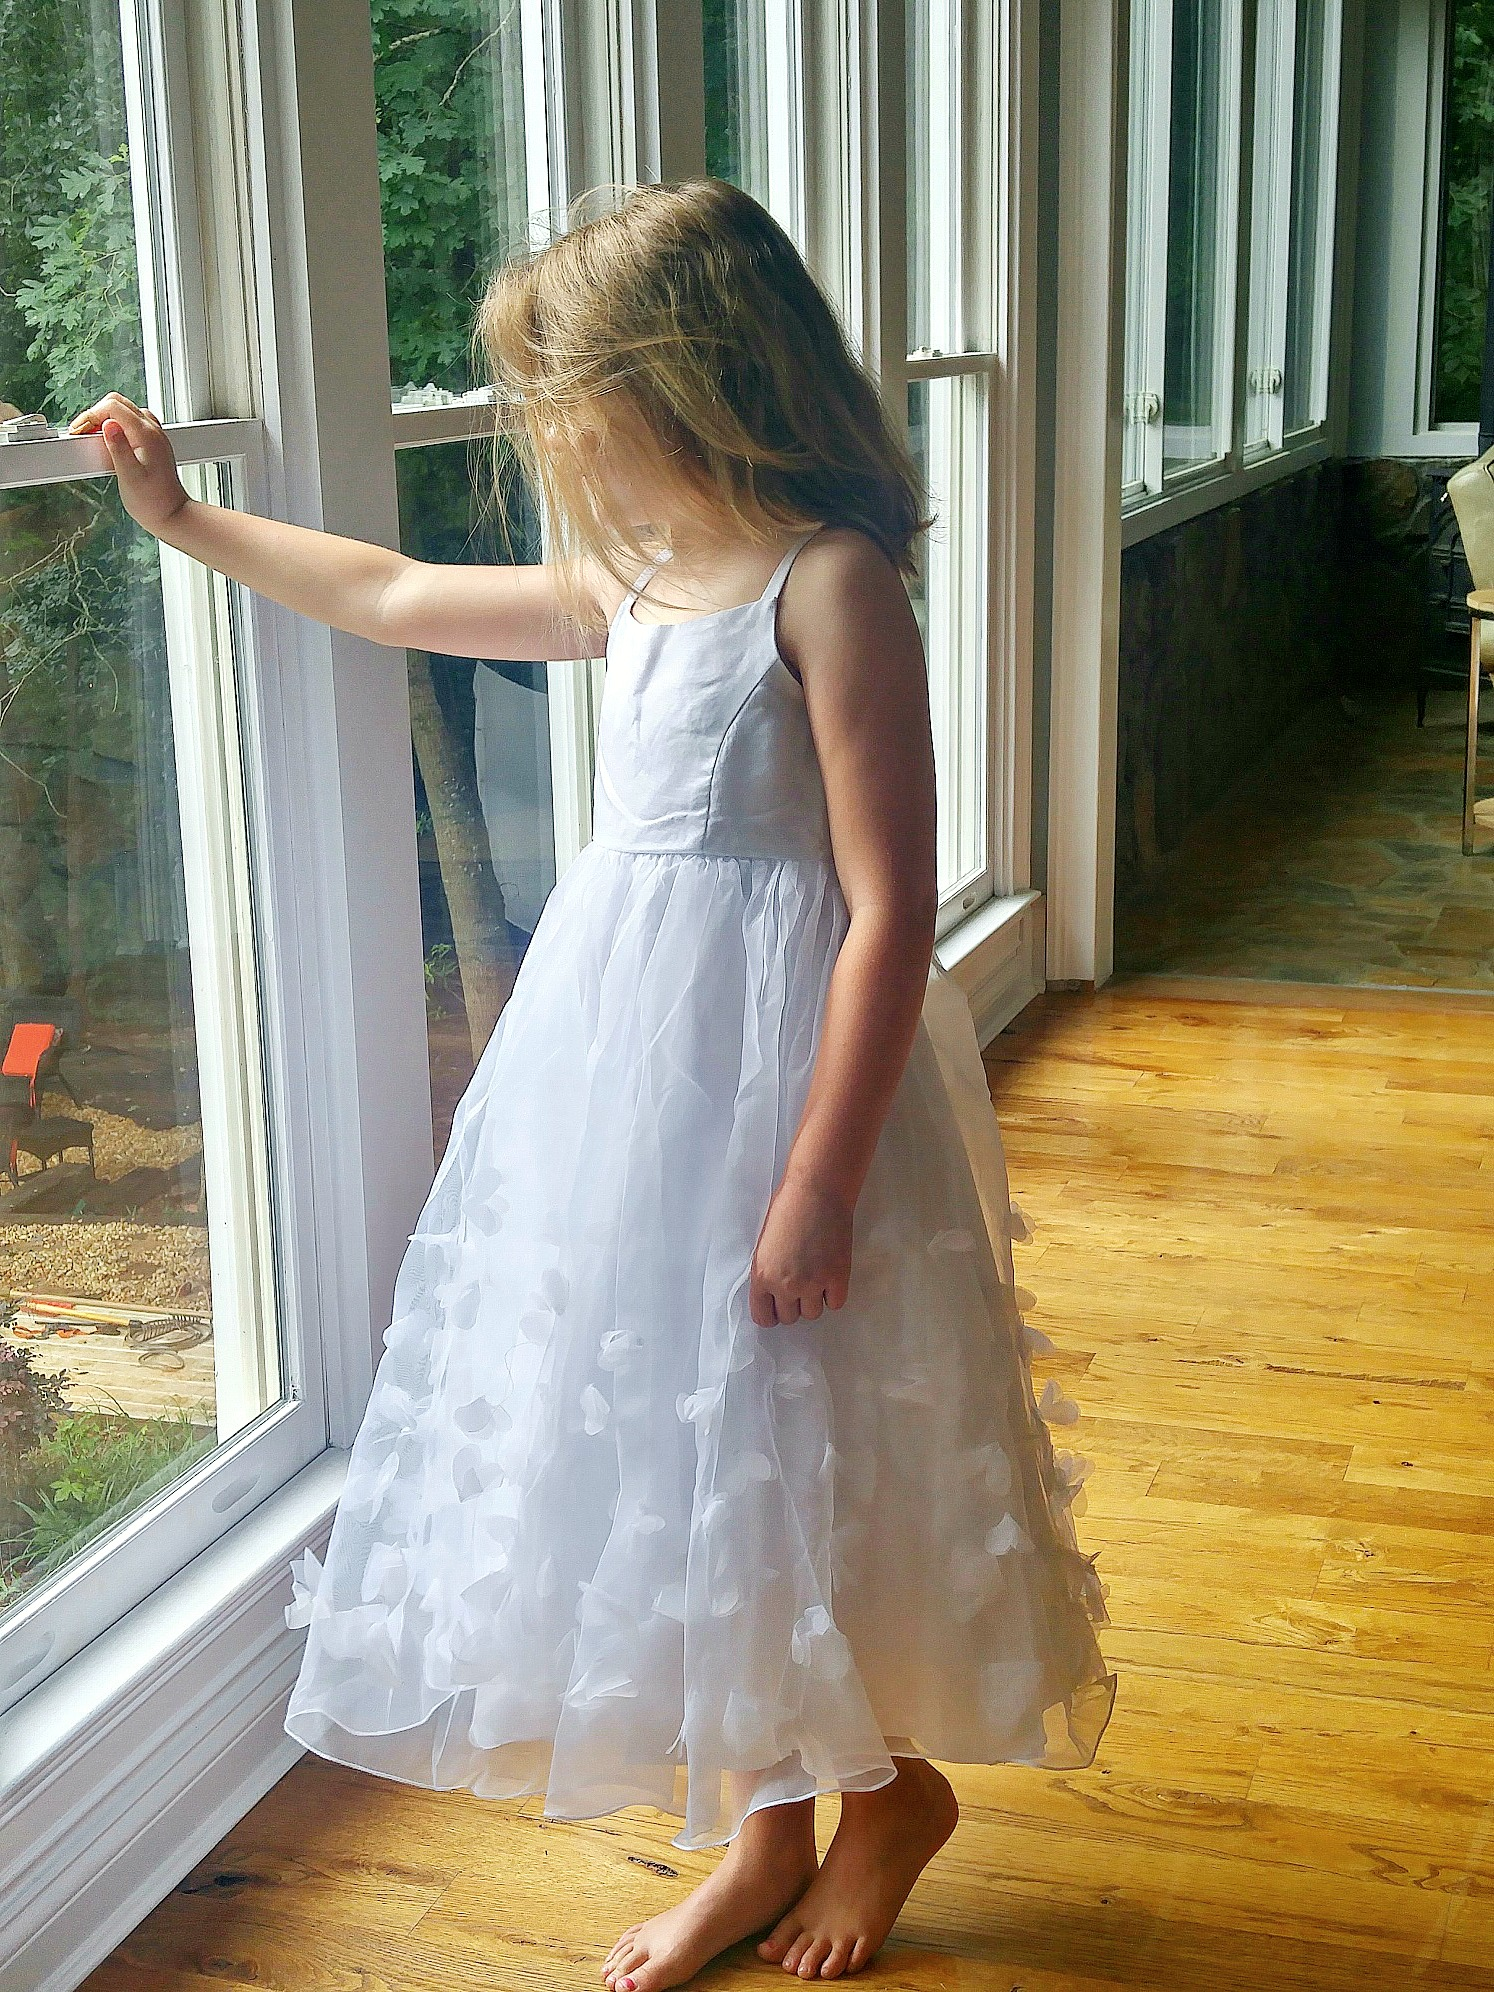 Dressing a family for a summer wedding